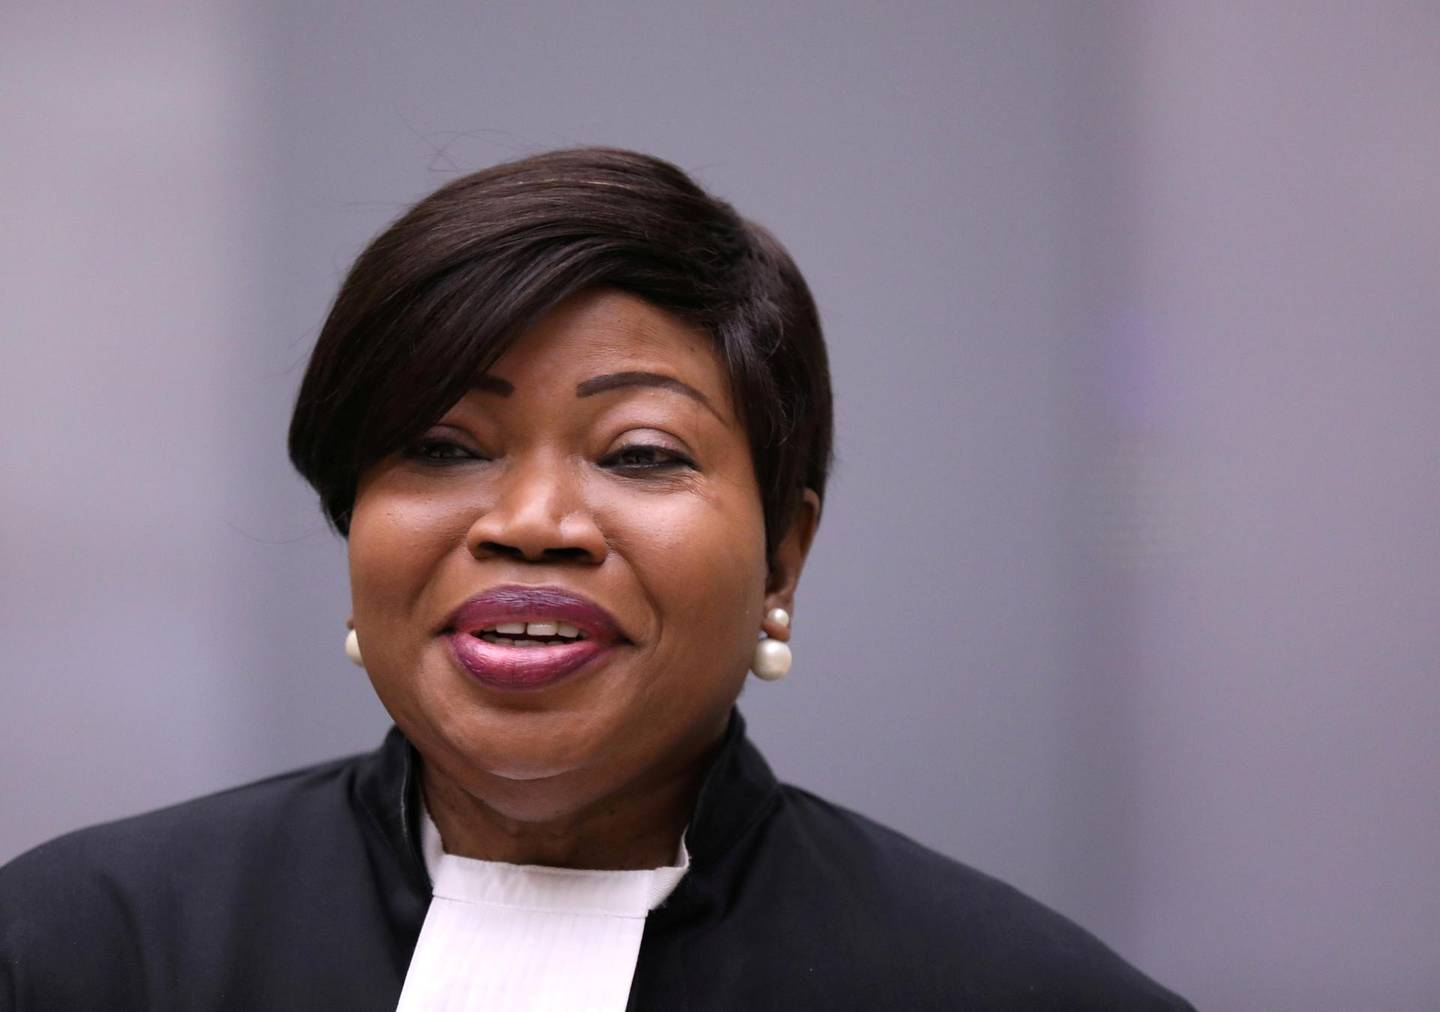 FILE PHOTO: Public Prosecutor Fatou Bensouda attends a trial at the ICC (International Criminal Court) in The Hague, the Netherlands July 8,2019. REUTERS/Eva Plevier/Pool/File Photo